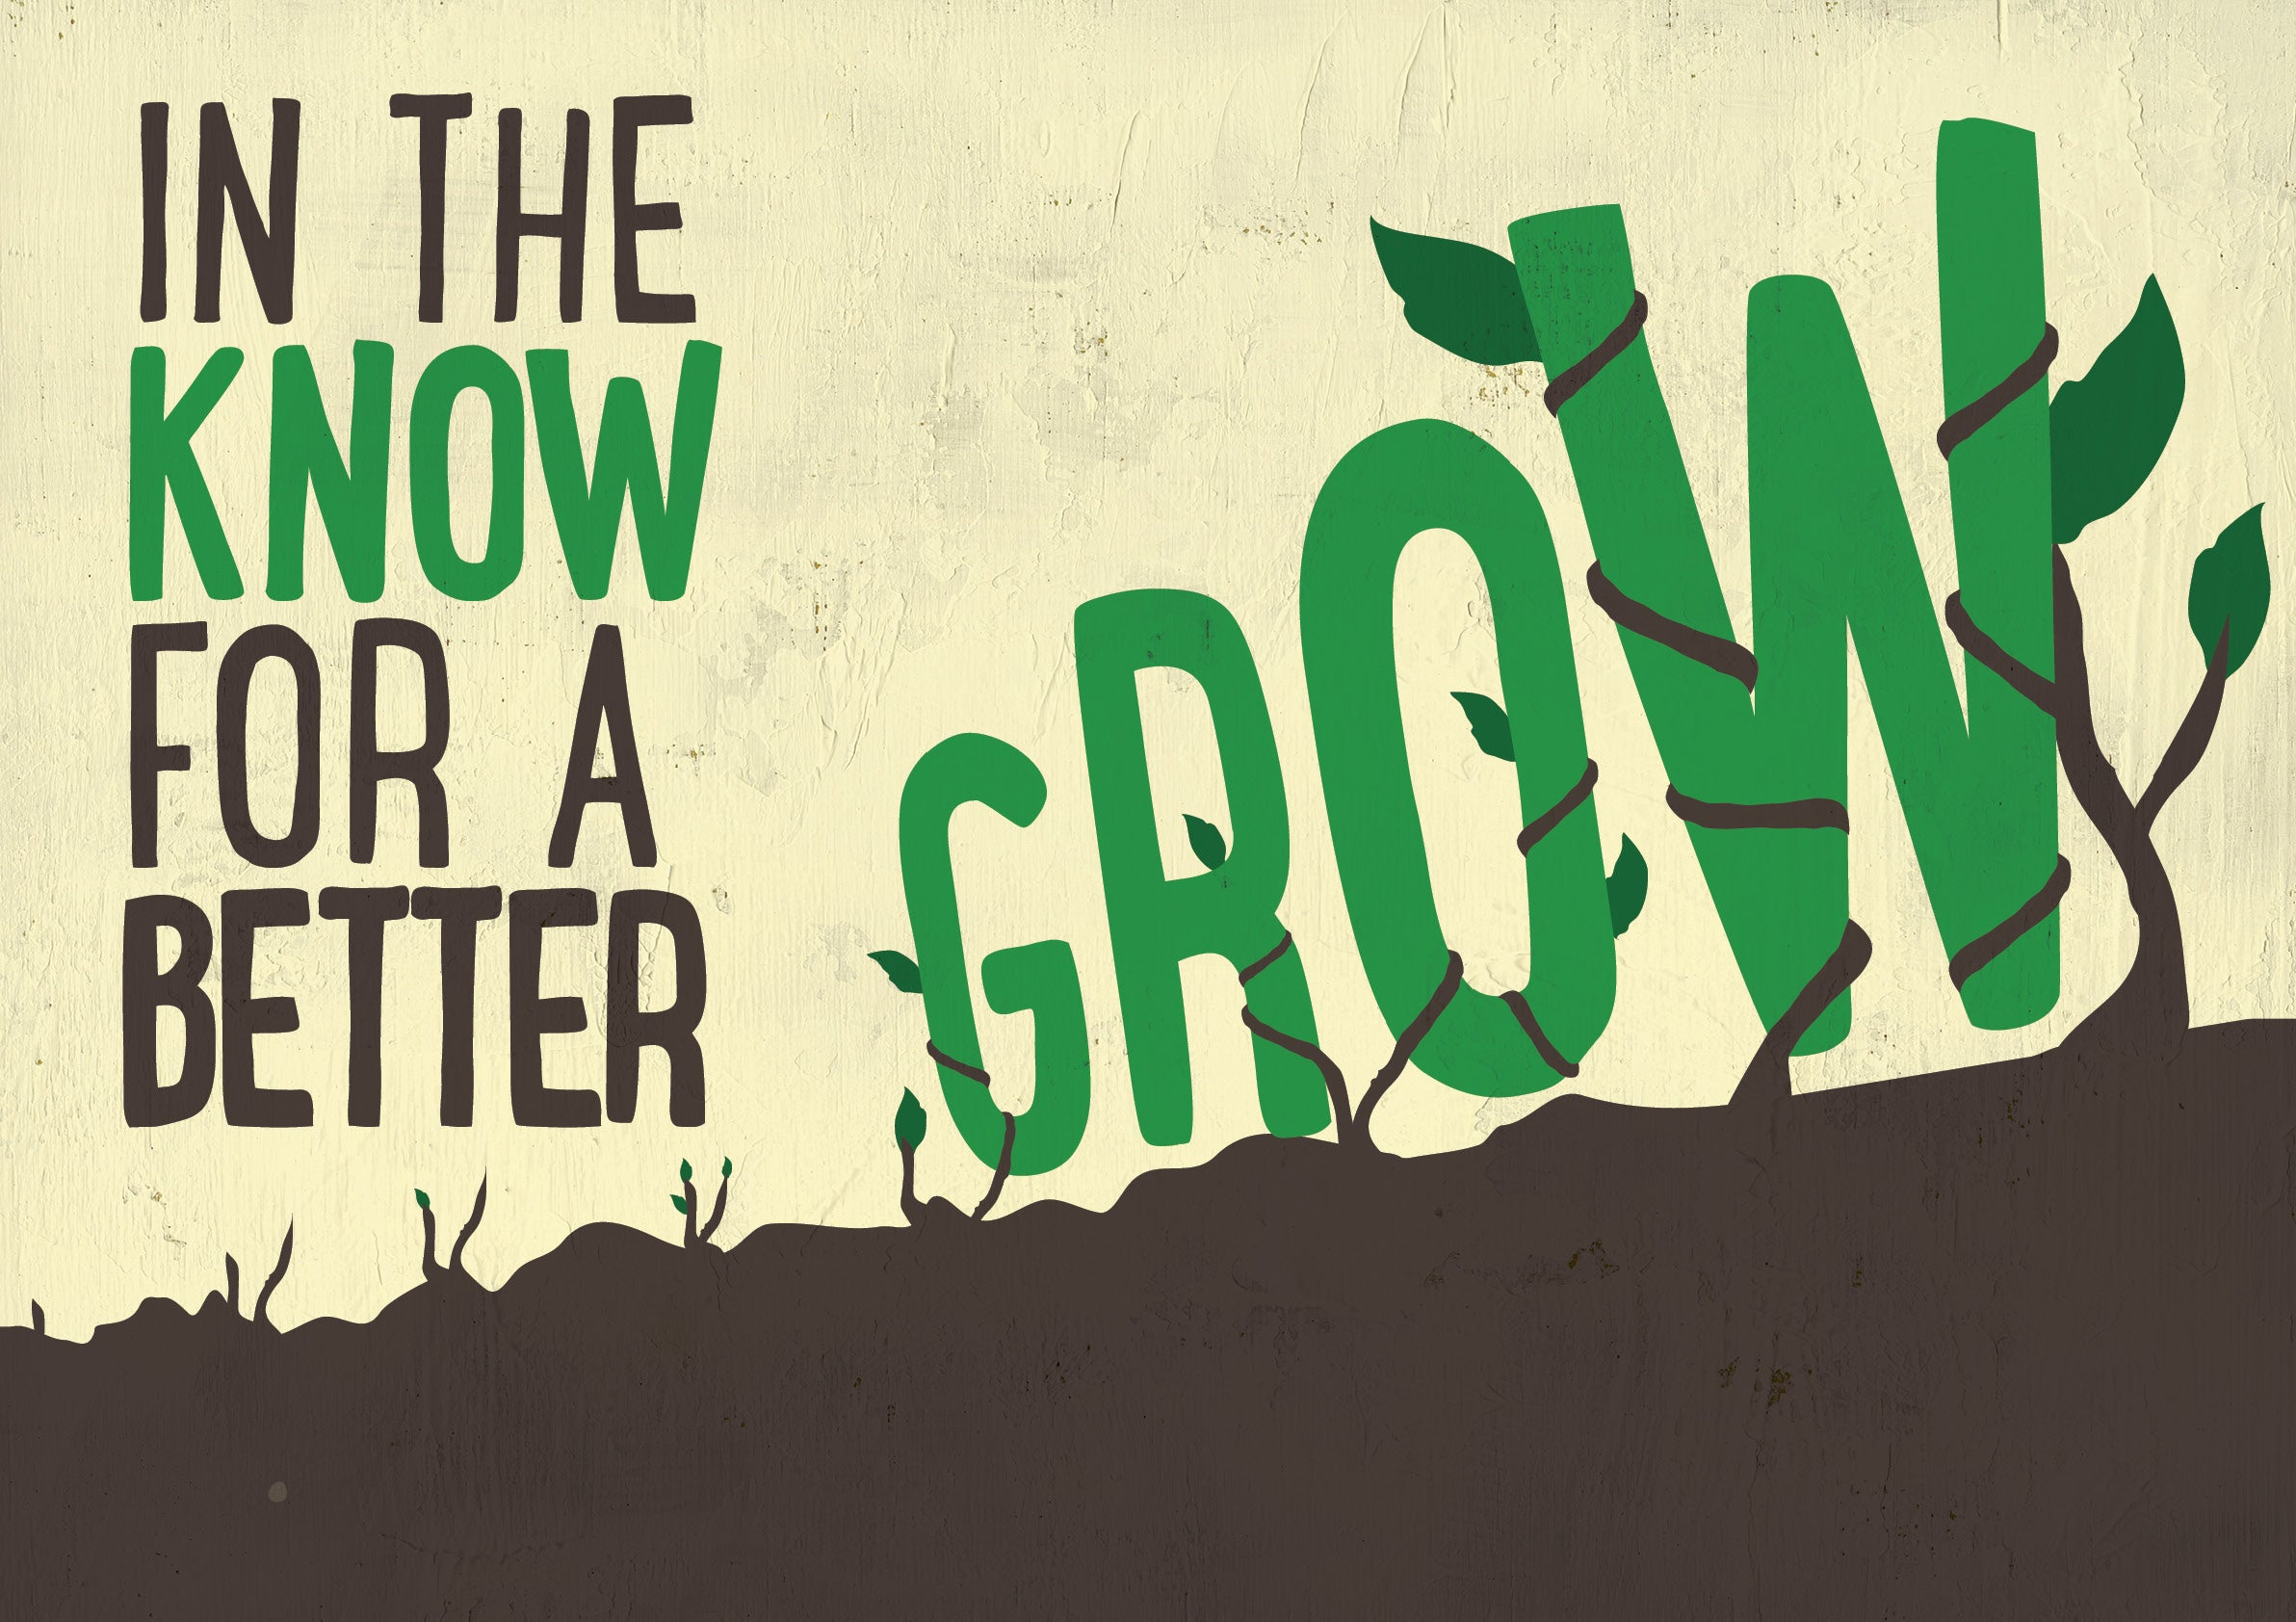 In the know for a better grow image